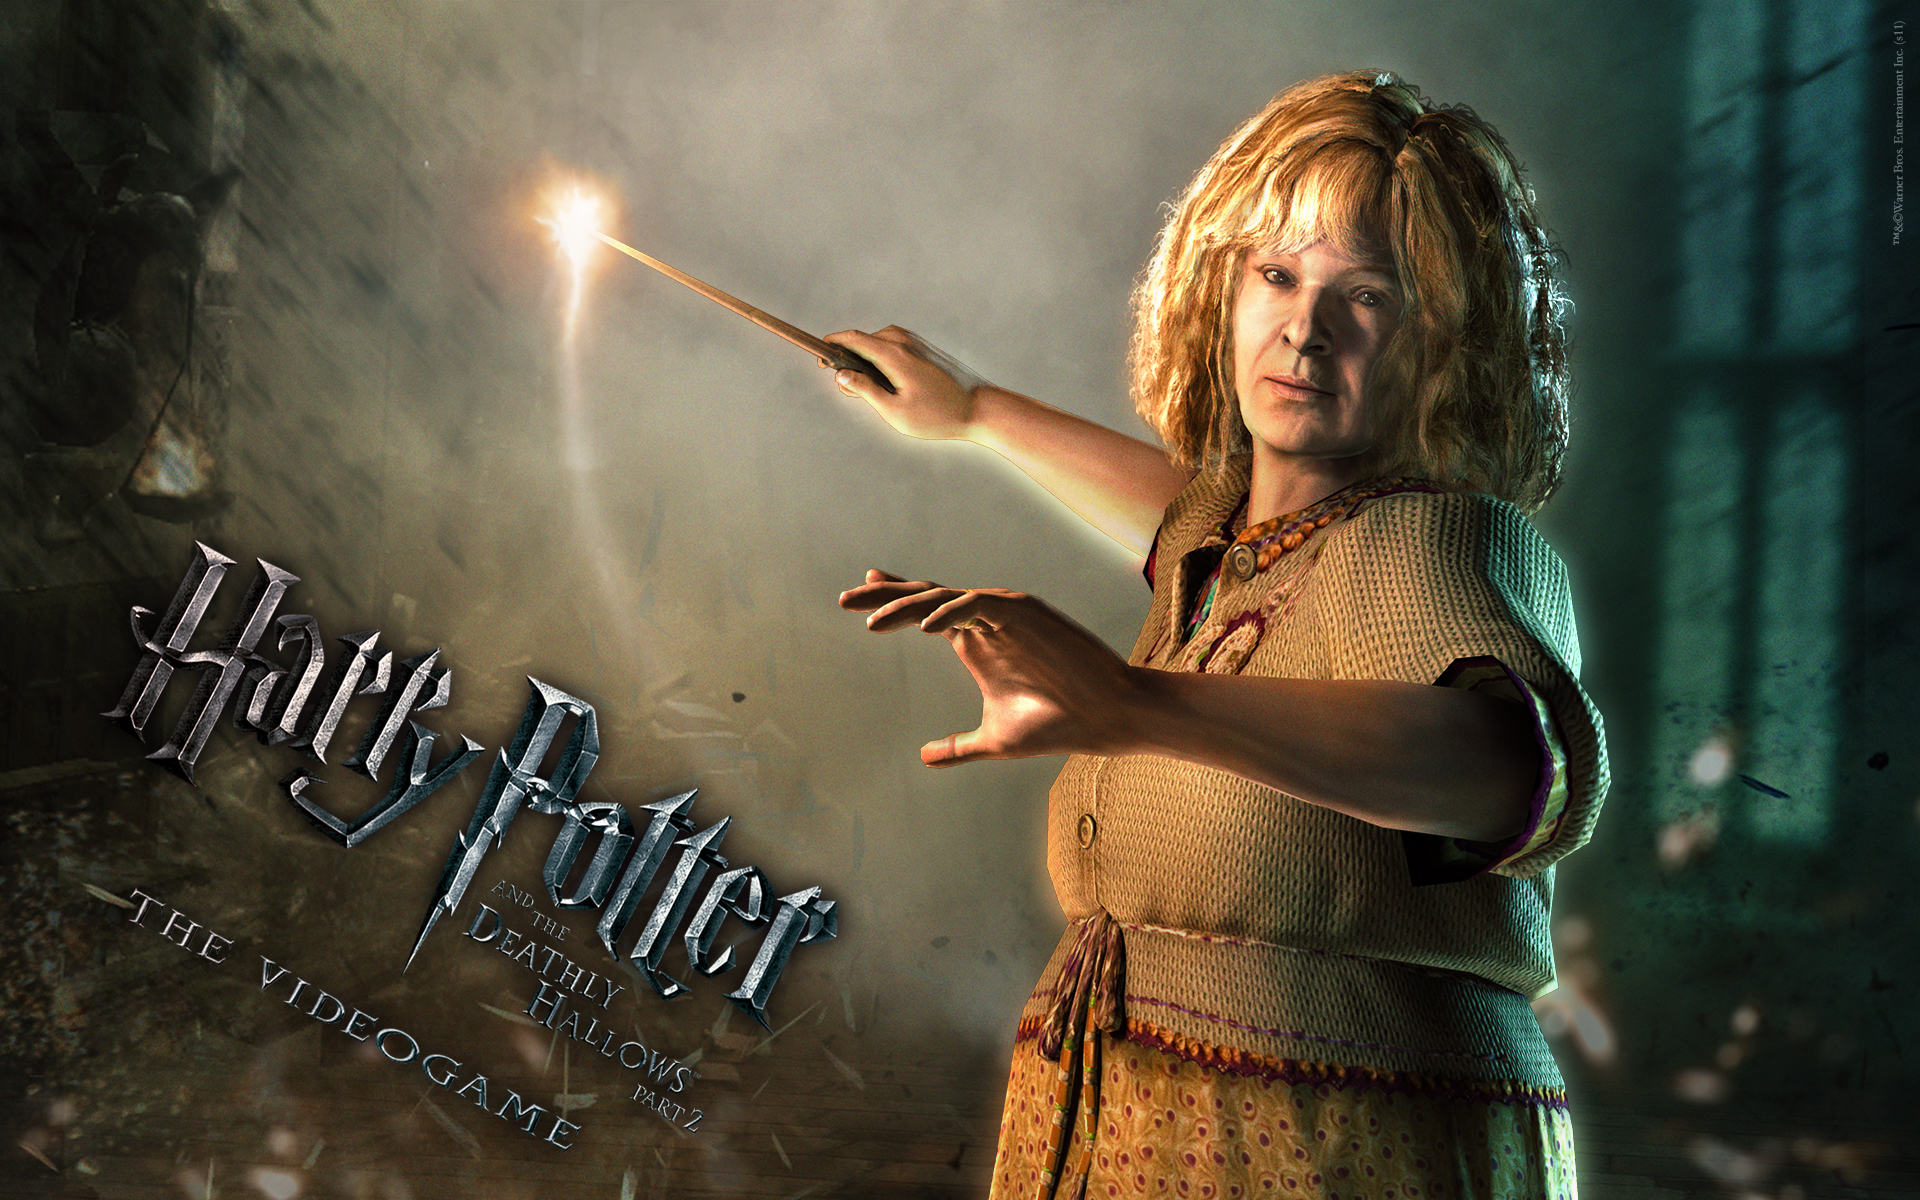 Top Wallpaper Harry Potter Mac - harry-potter-and-the-deathly-hallows-part-2-game-wallpaper-molly  Snapshot_911223.jpg